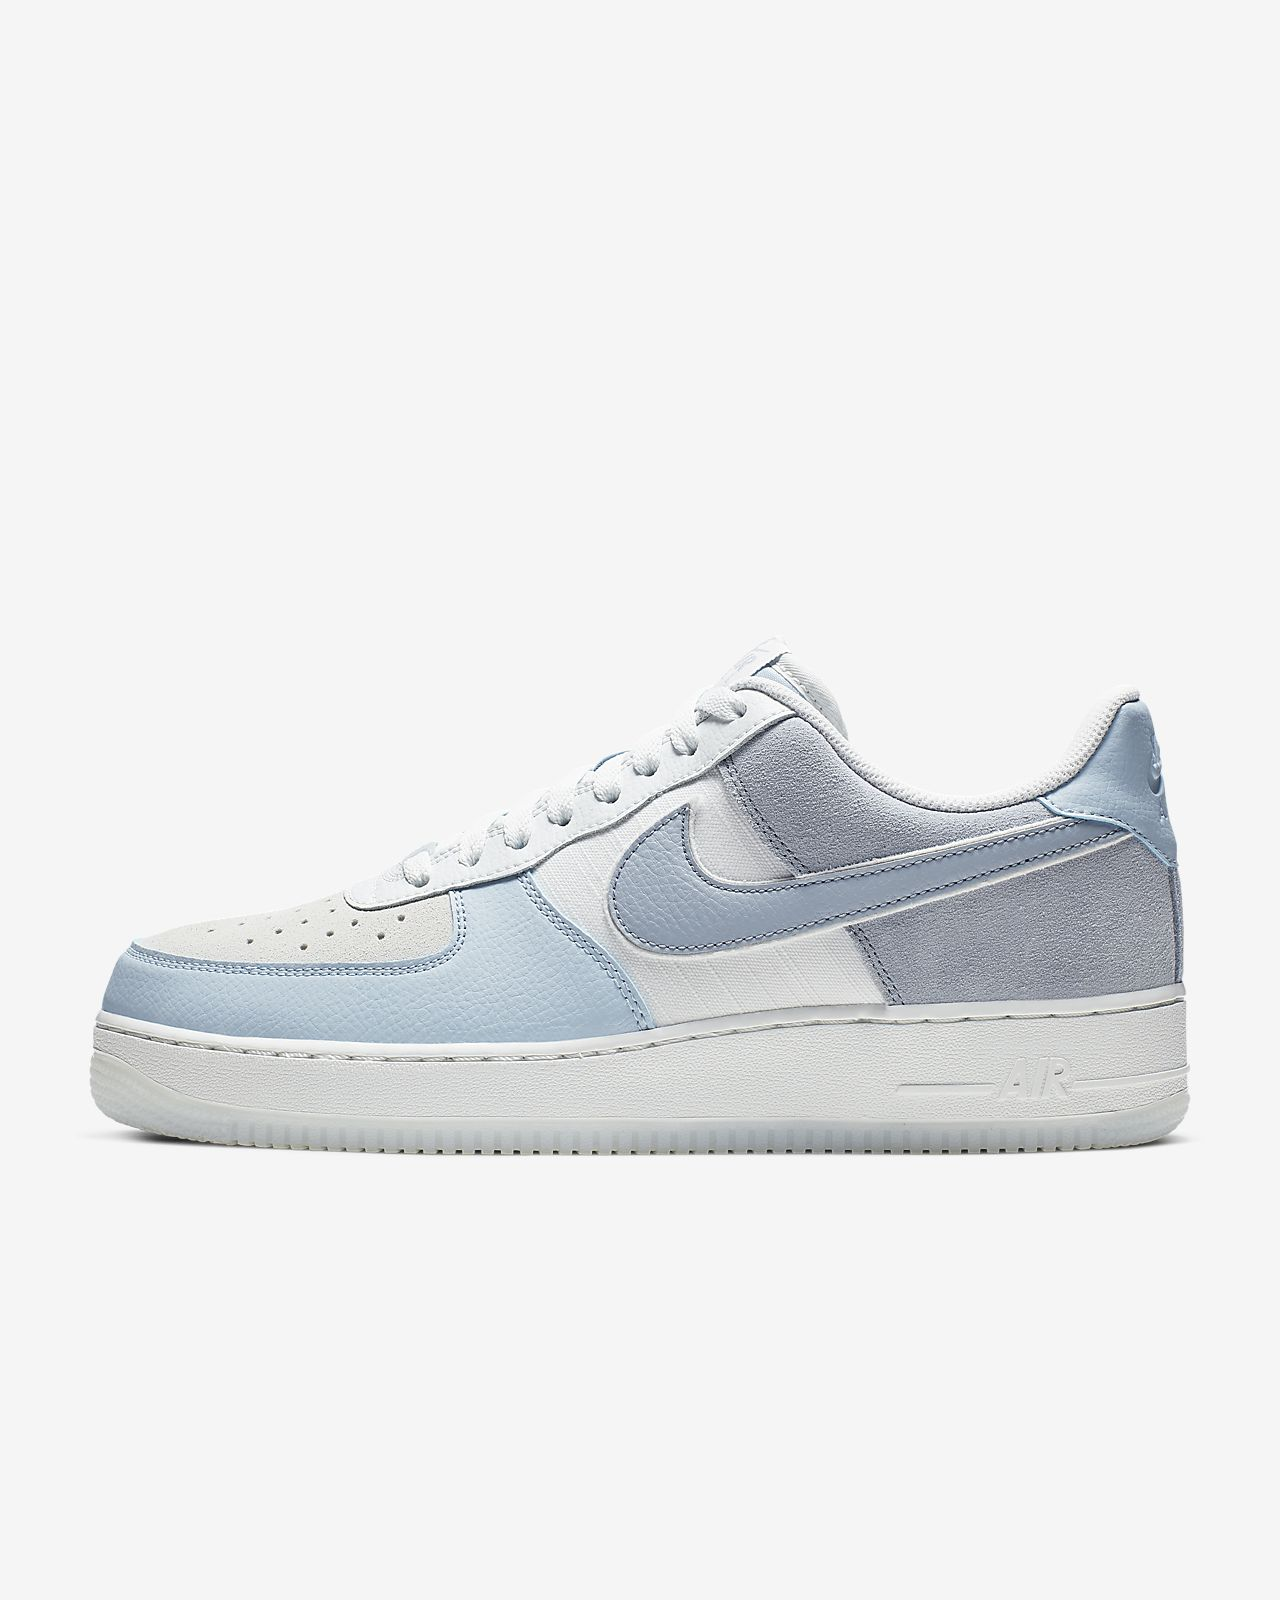 Chaussure Nike Air Force 1 '07 LV8 2 pour Homme